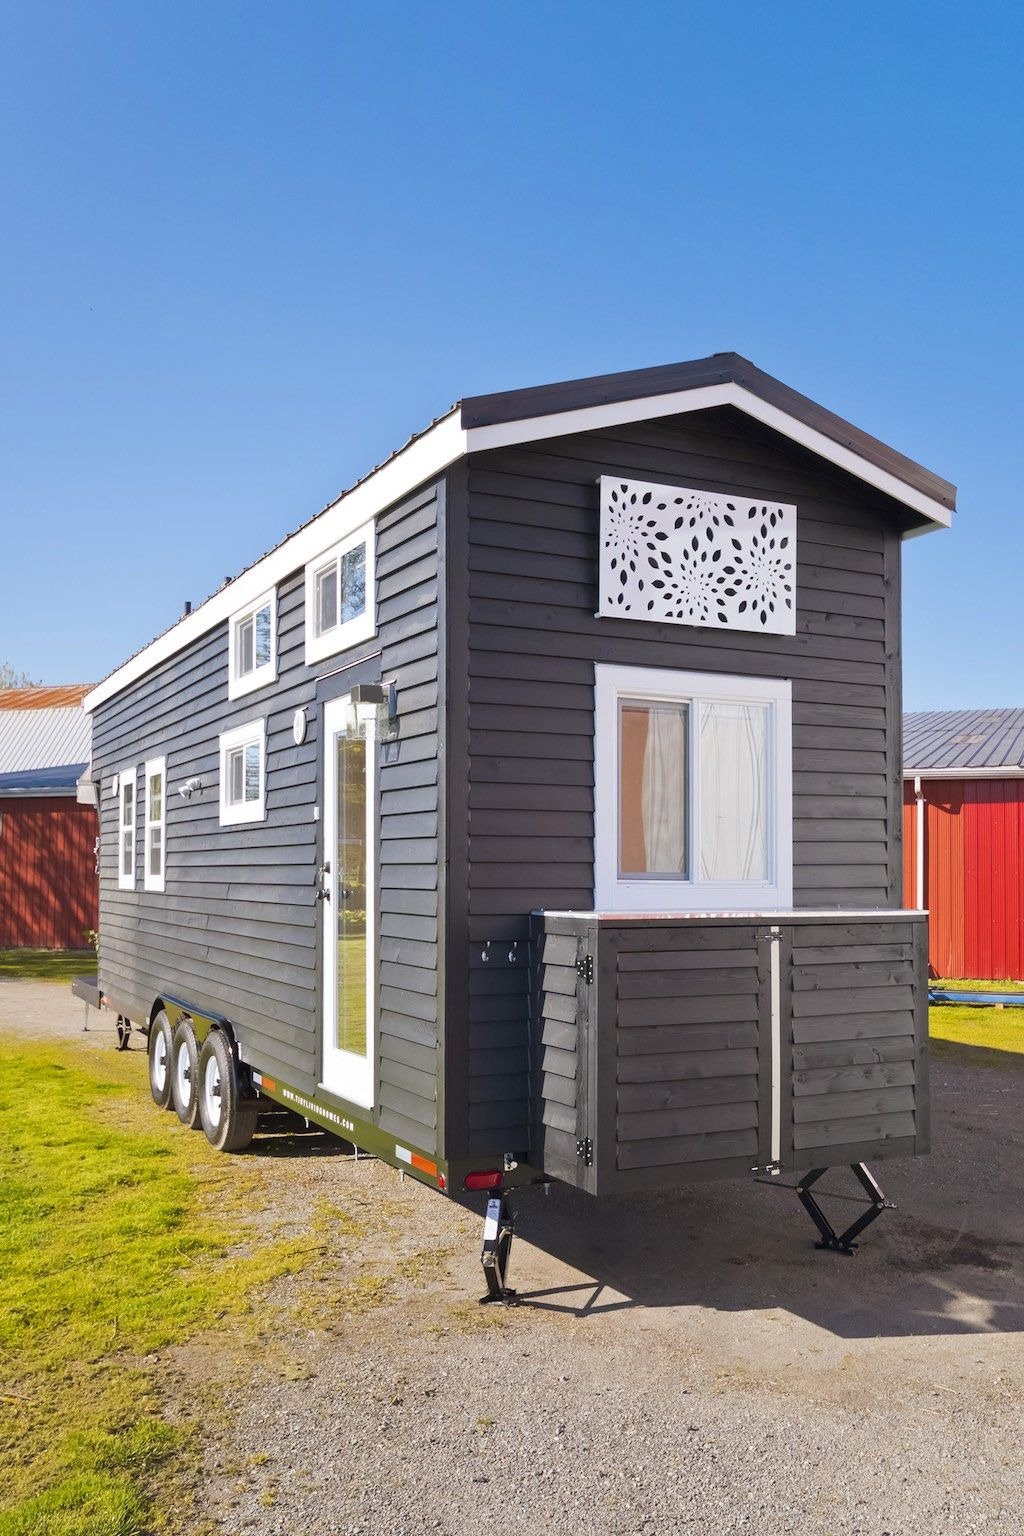 A two loft 310 square feet tiny house on wheels in Delta British